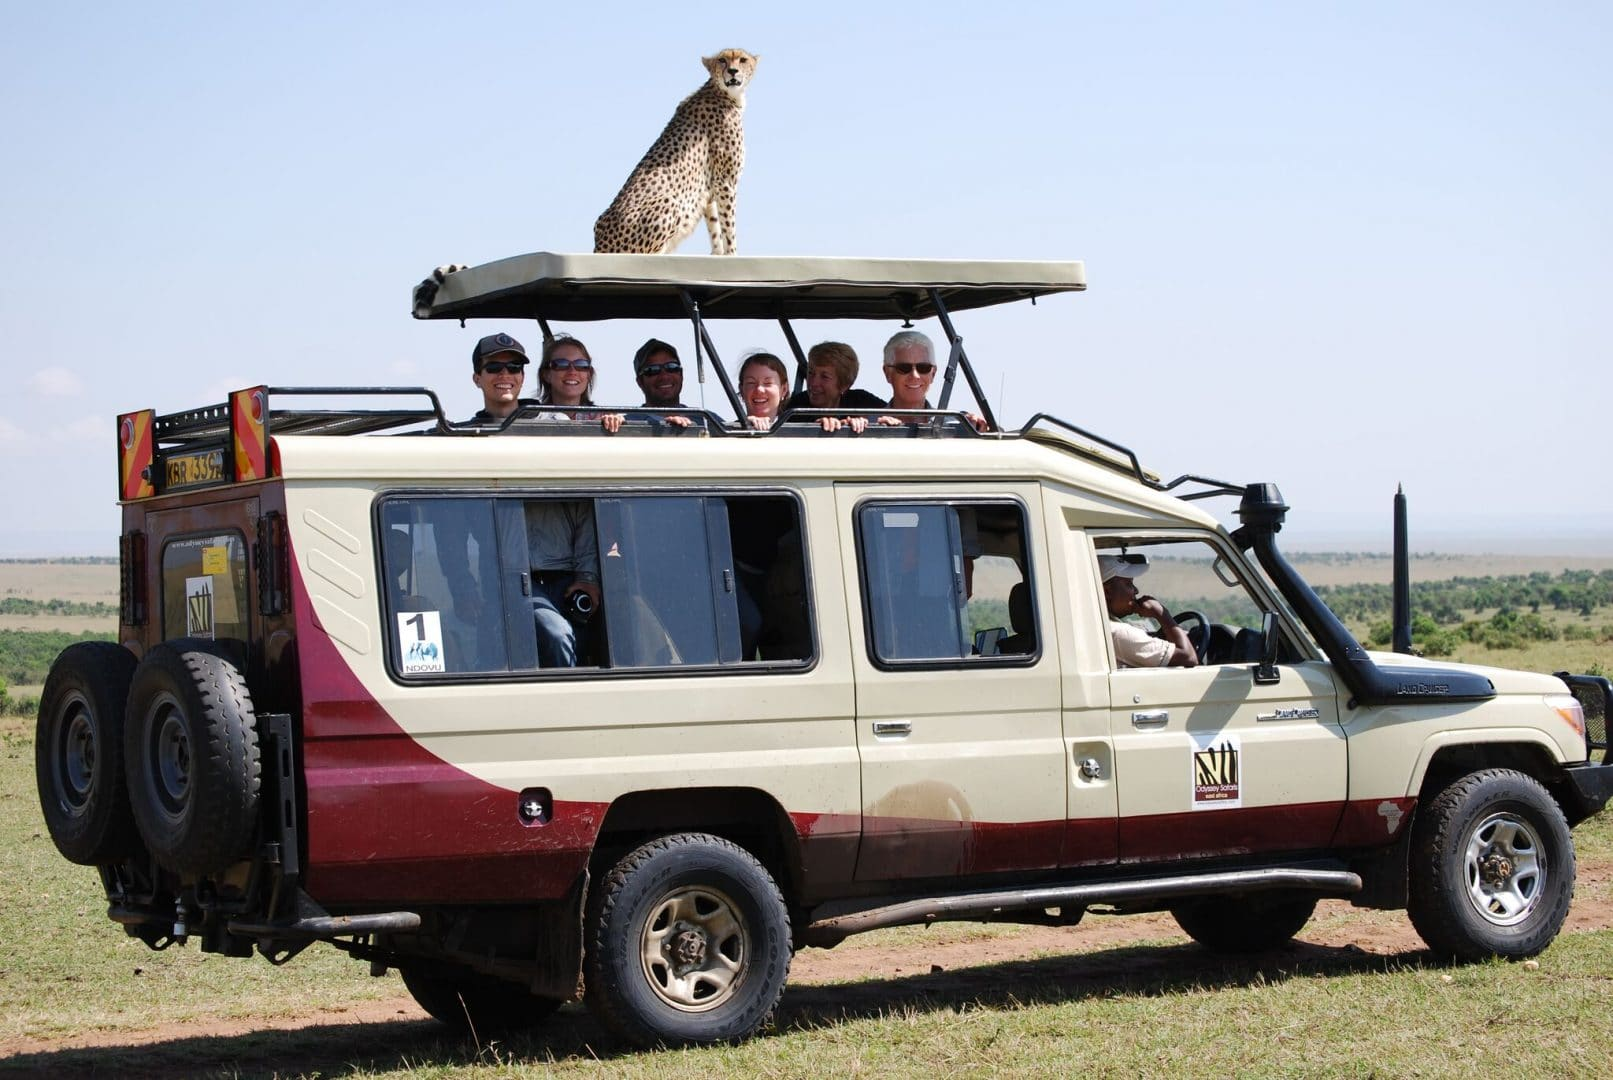 Highlights of Kenya Safari with International Airfare from Toronto